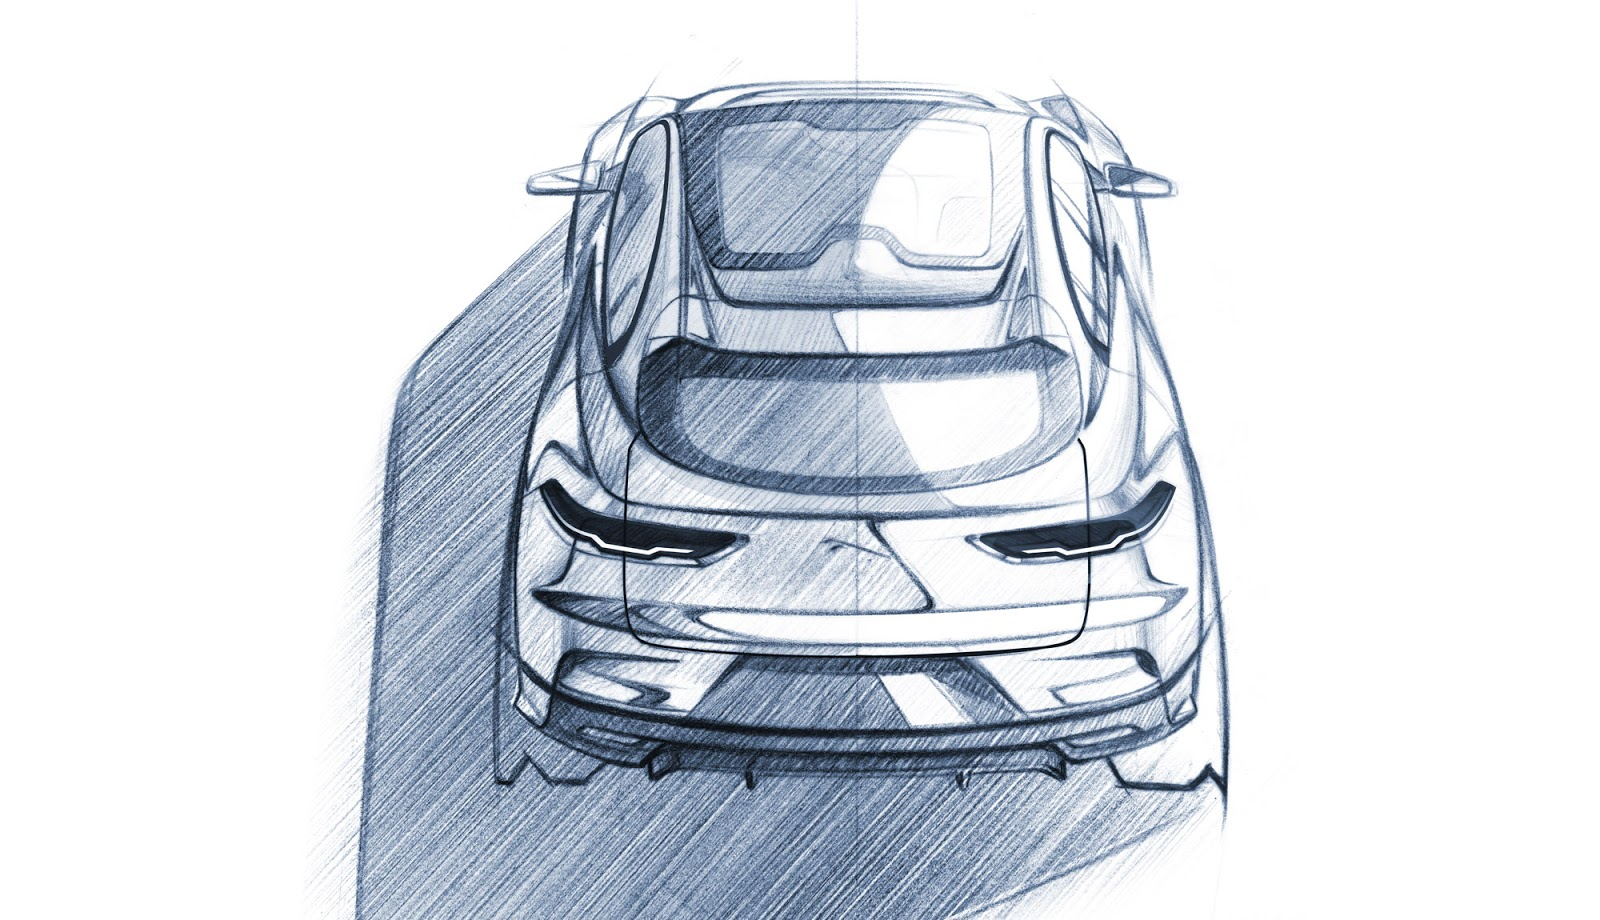 Jaguar I-Pace pencil sketch - rear plan view